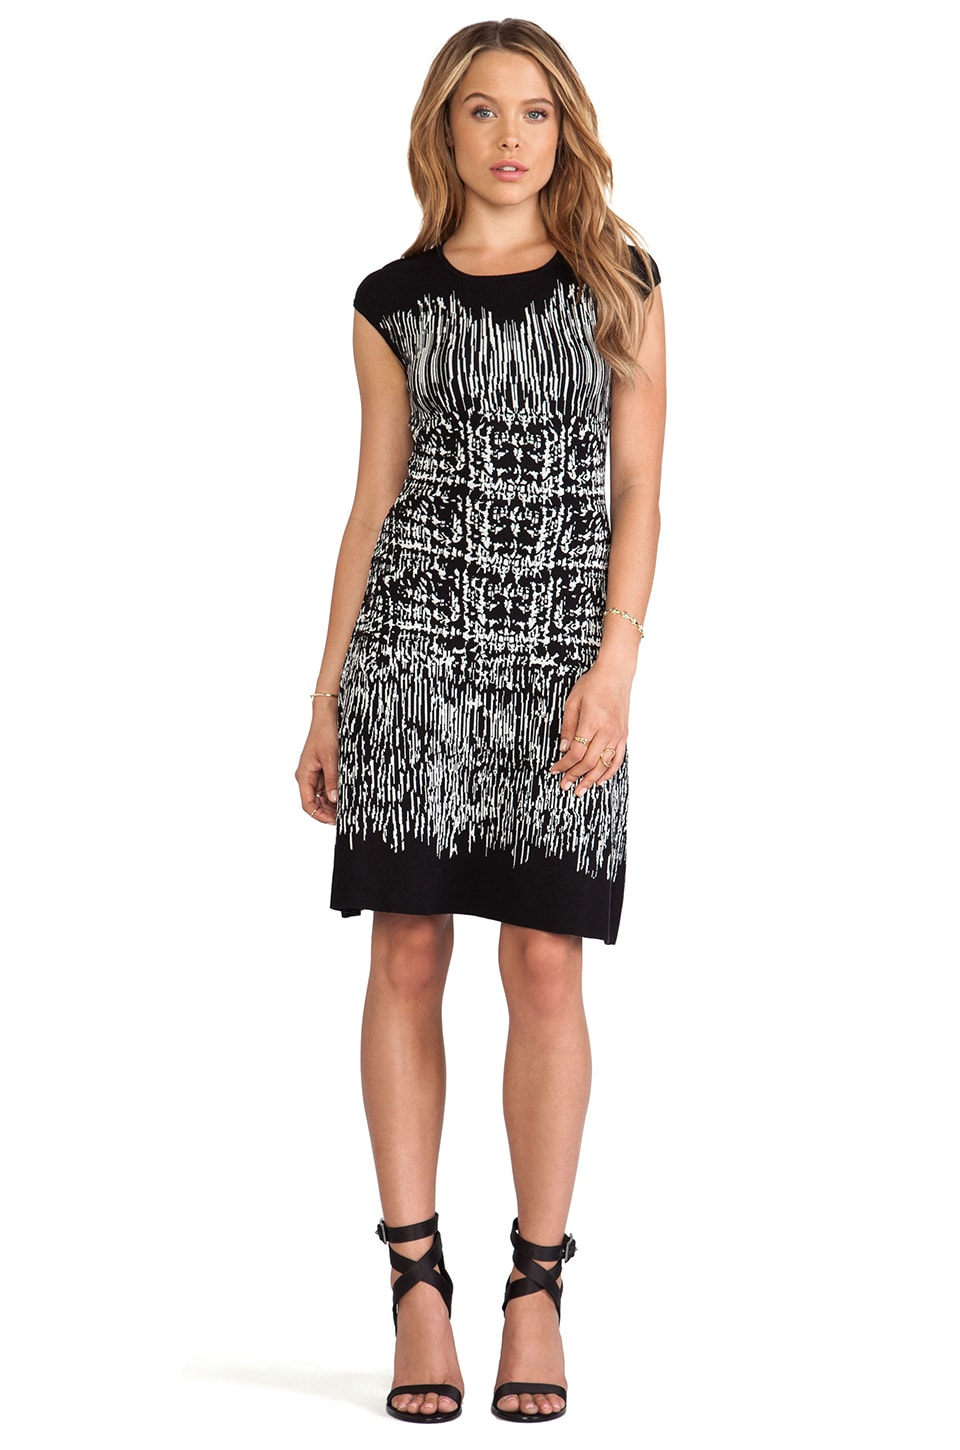 BCBGMAXAZRIA Melissa Crew Neck Printed Dress in Black Combo